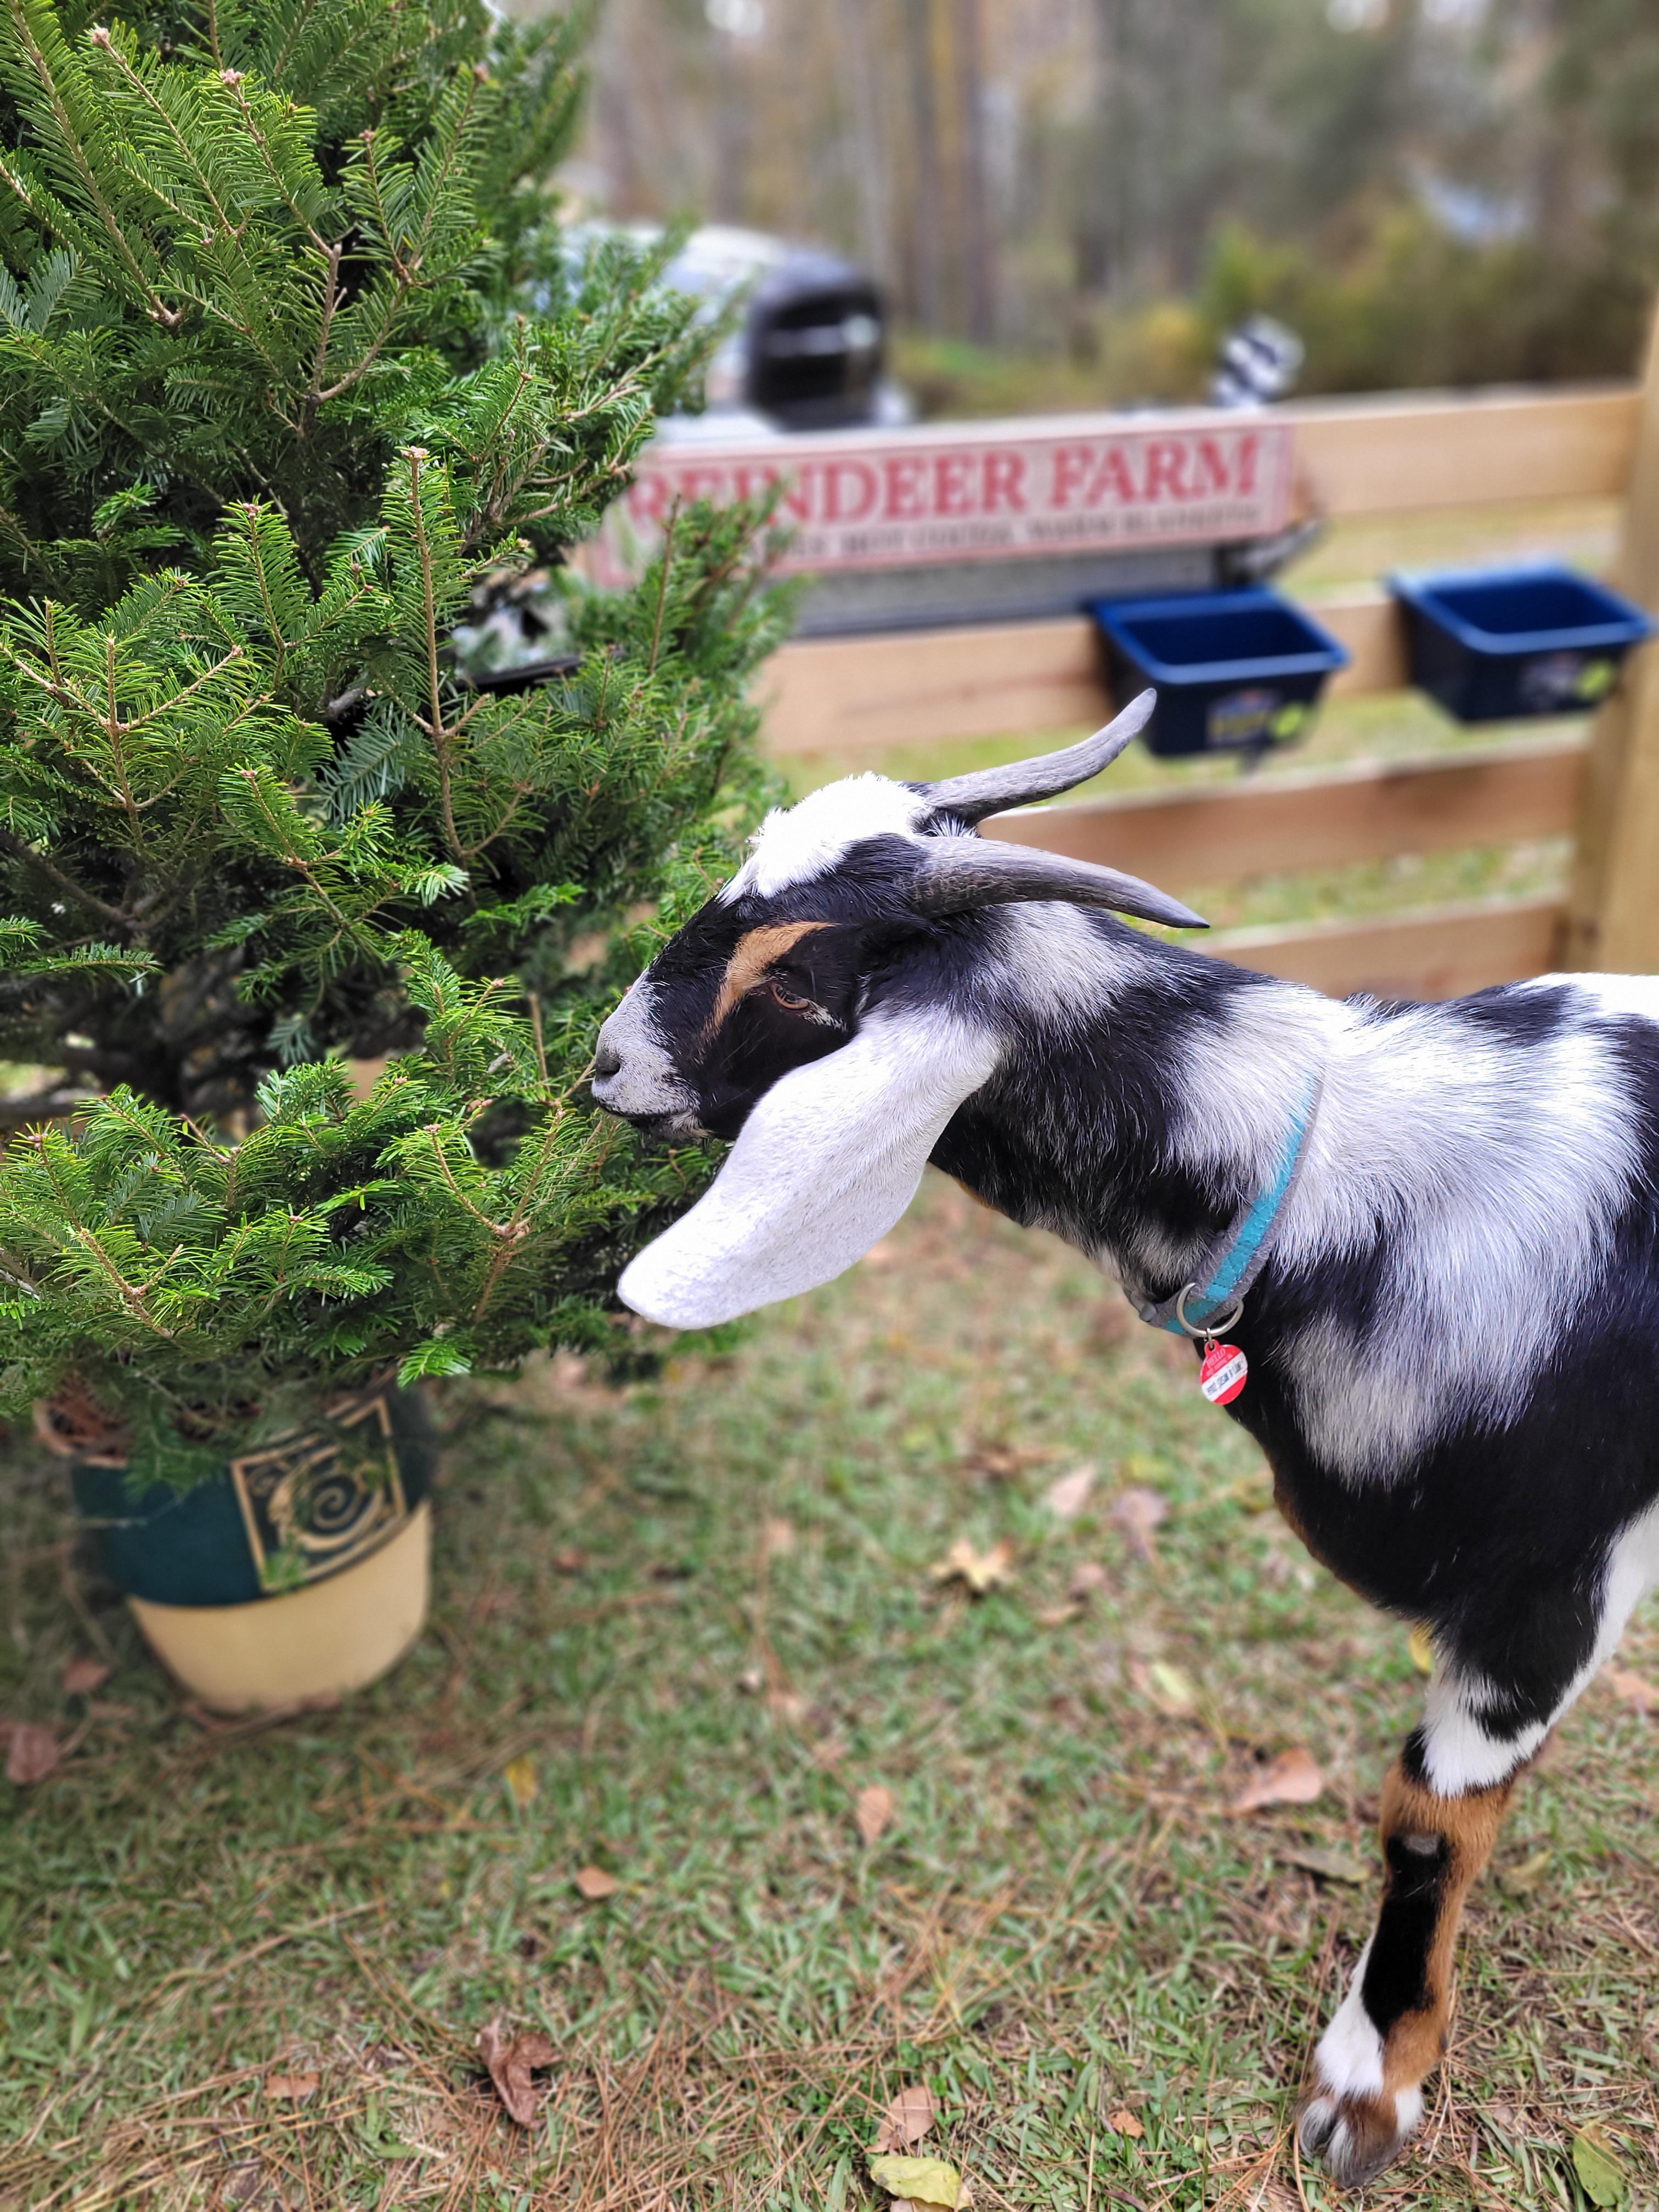 A goat is munching on the leaves of a potted Christmas tree